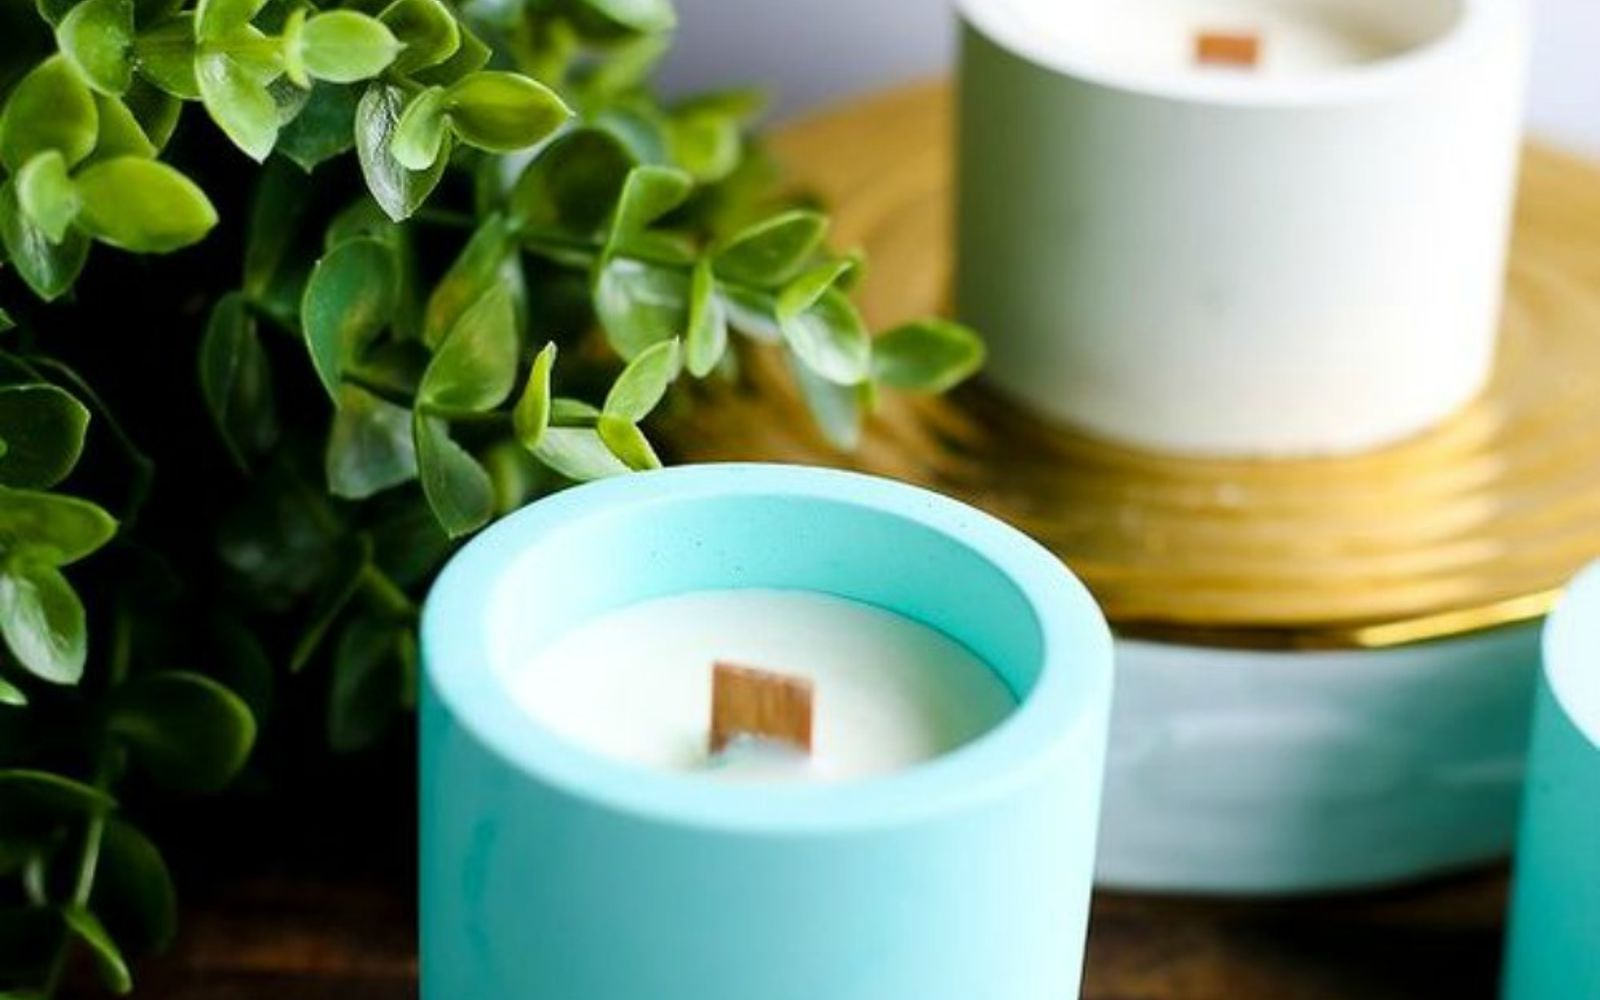 s 15 gorgeous homemade candle ideas you re going to want to try, These concrete votive stunners